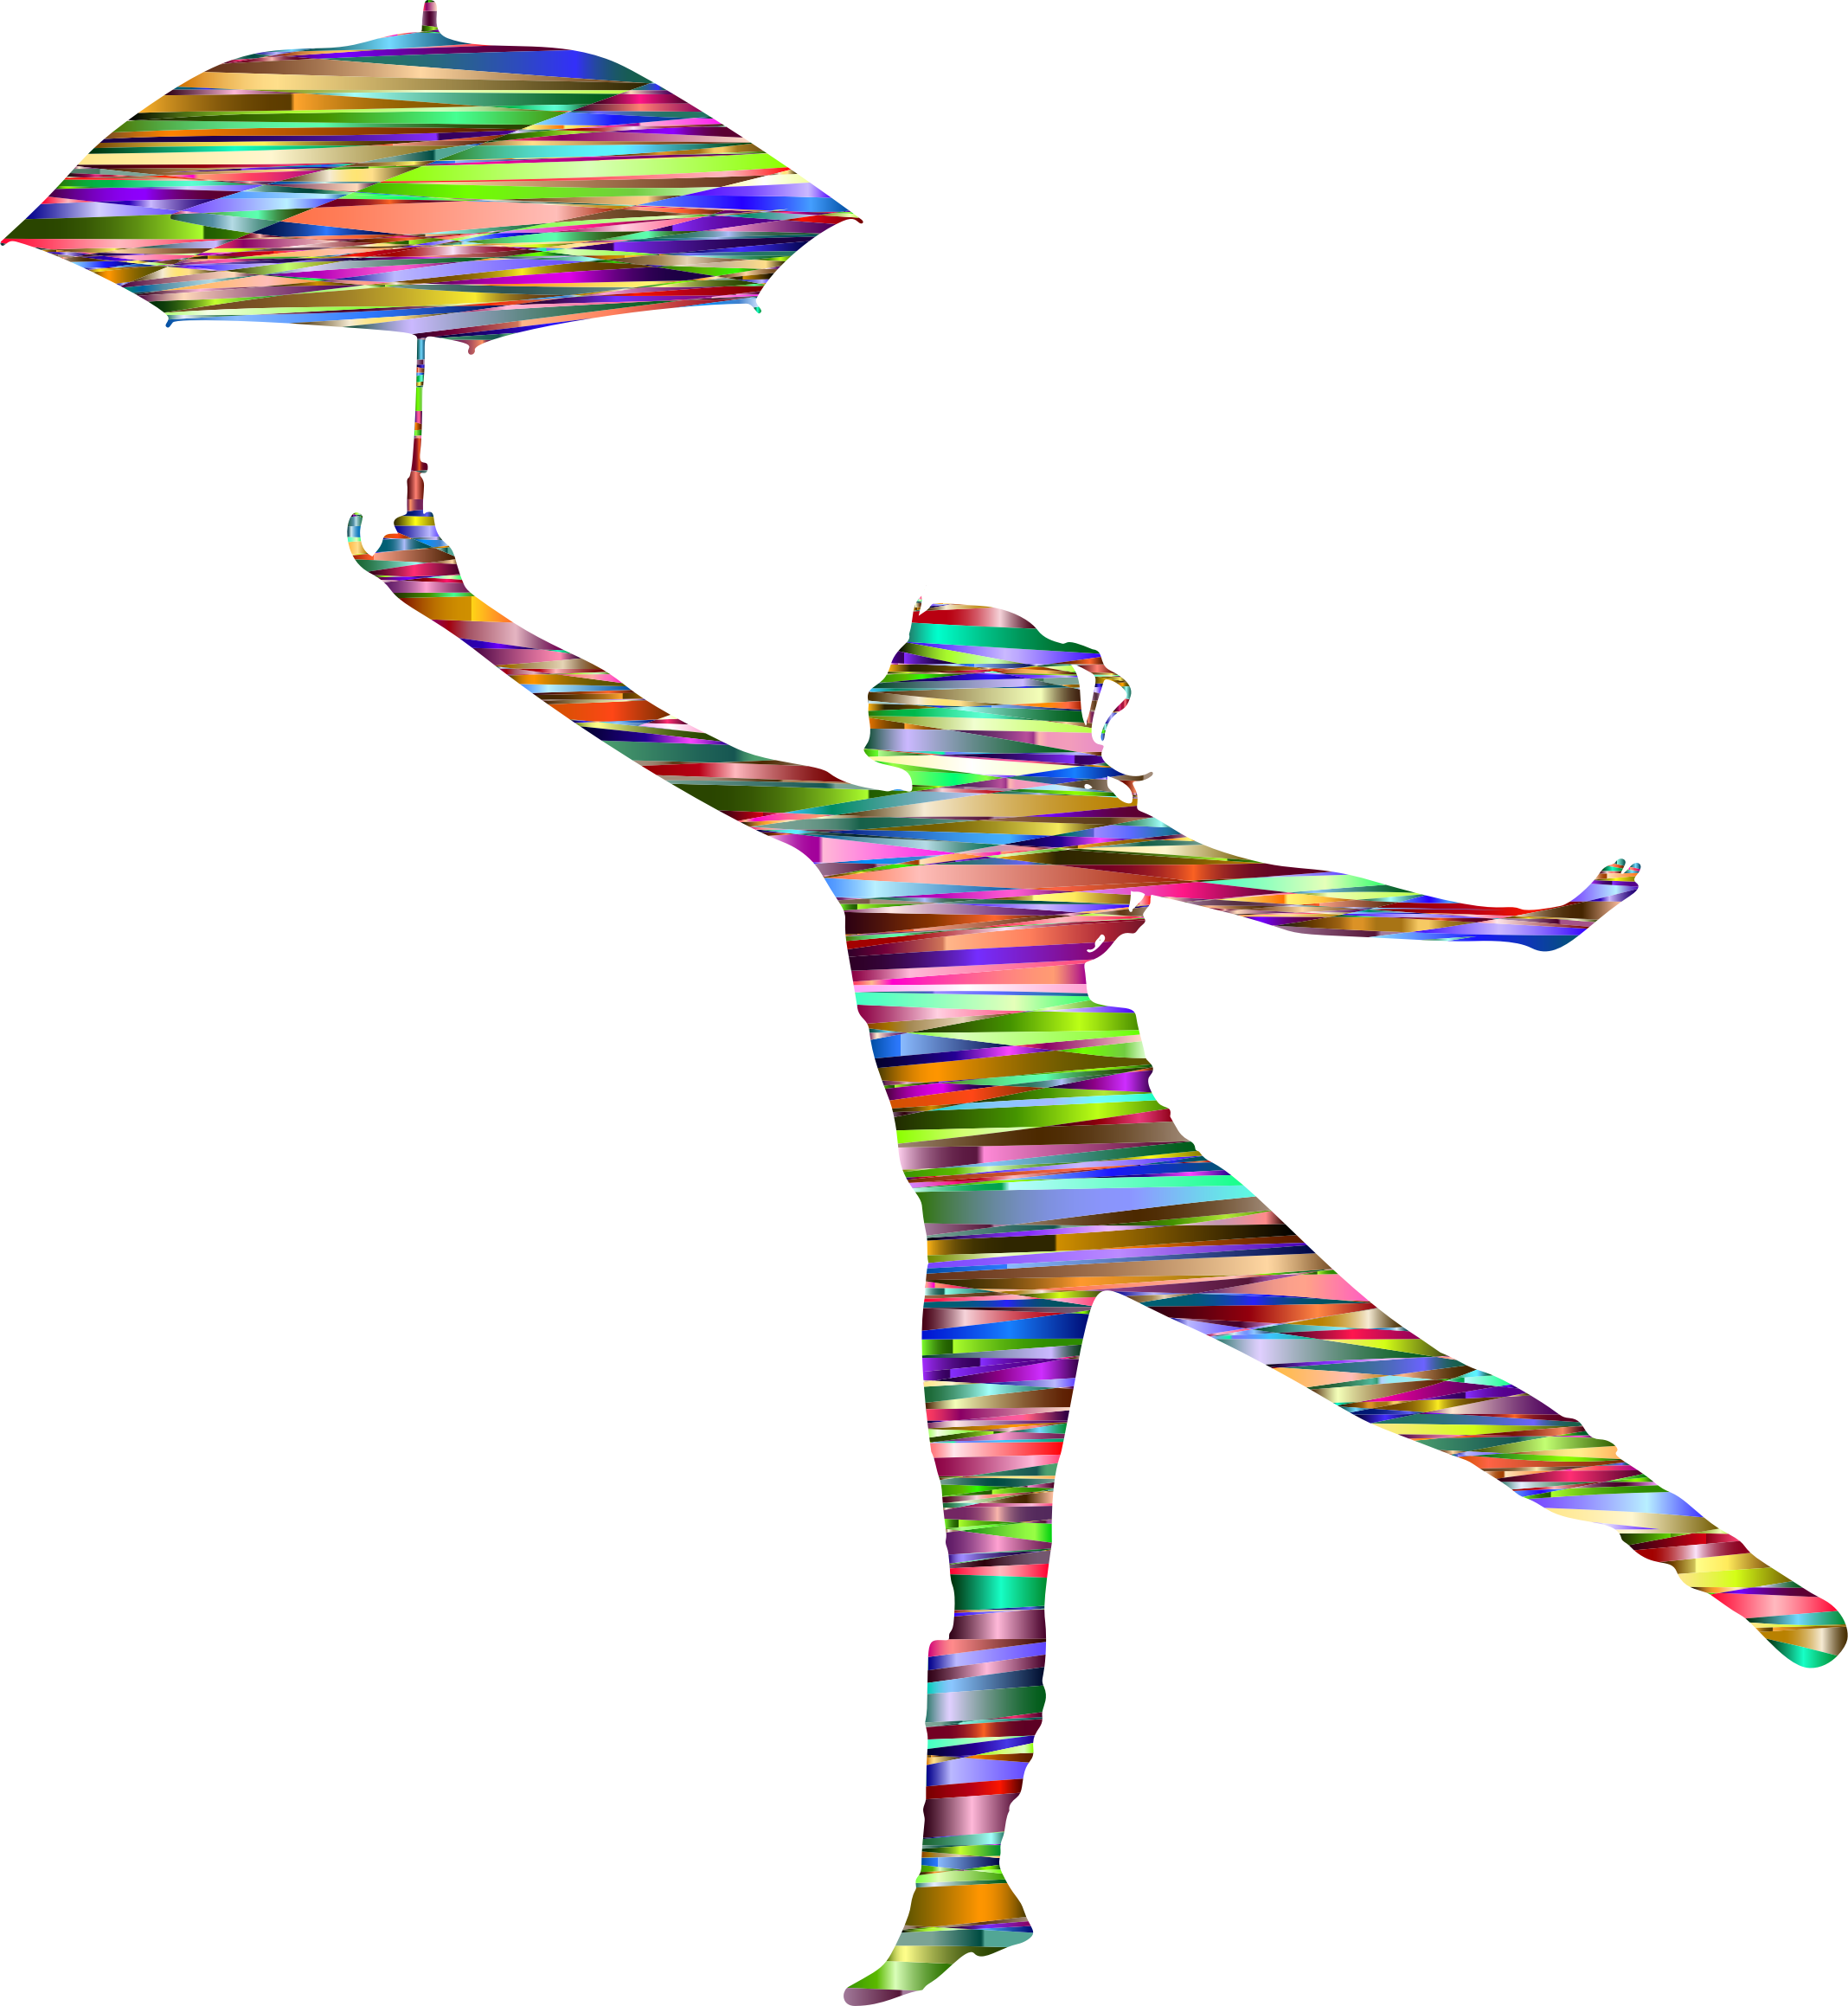 Woman clipart abstract. Chromatic with umbrella silhouette